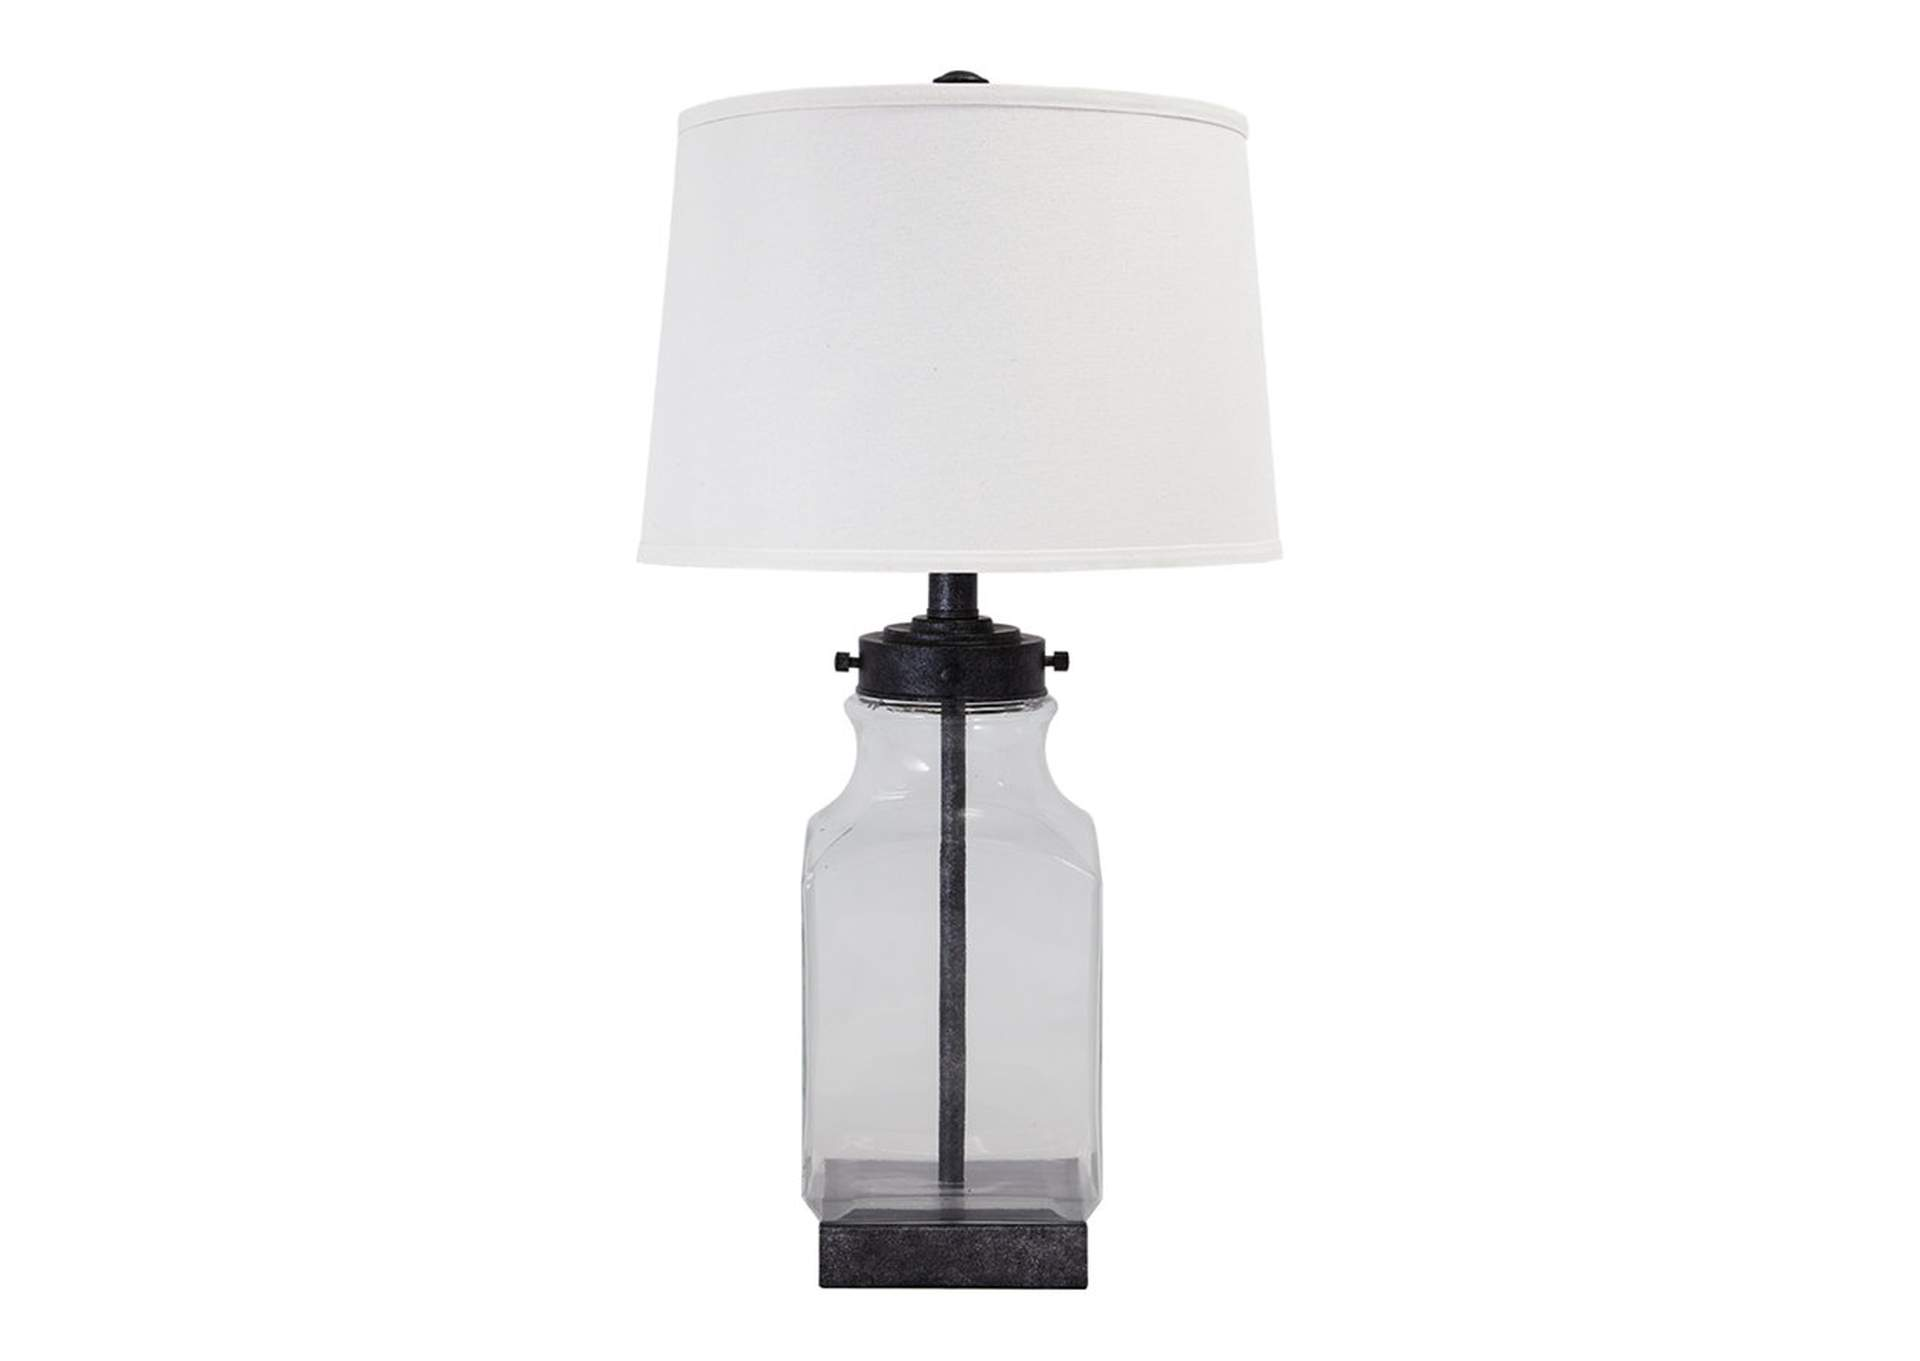 Transparent & Silver Finish Glass Table Lamp,Direct To Consumer Express